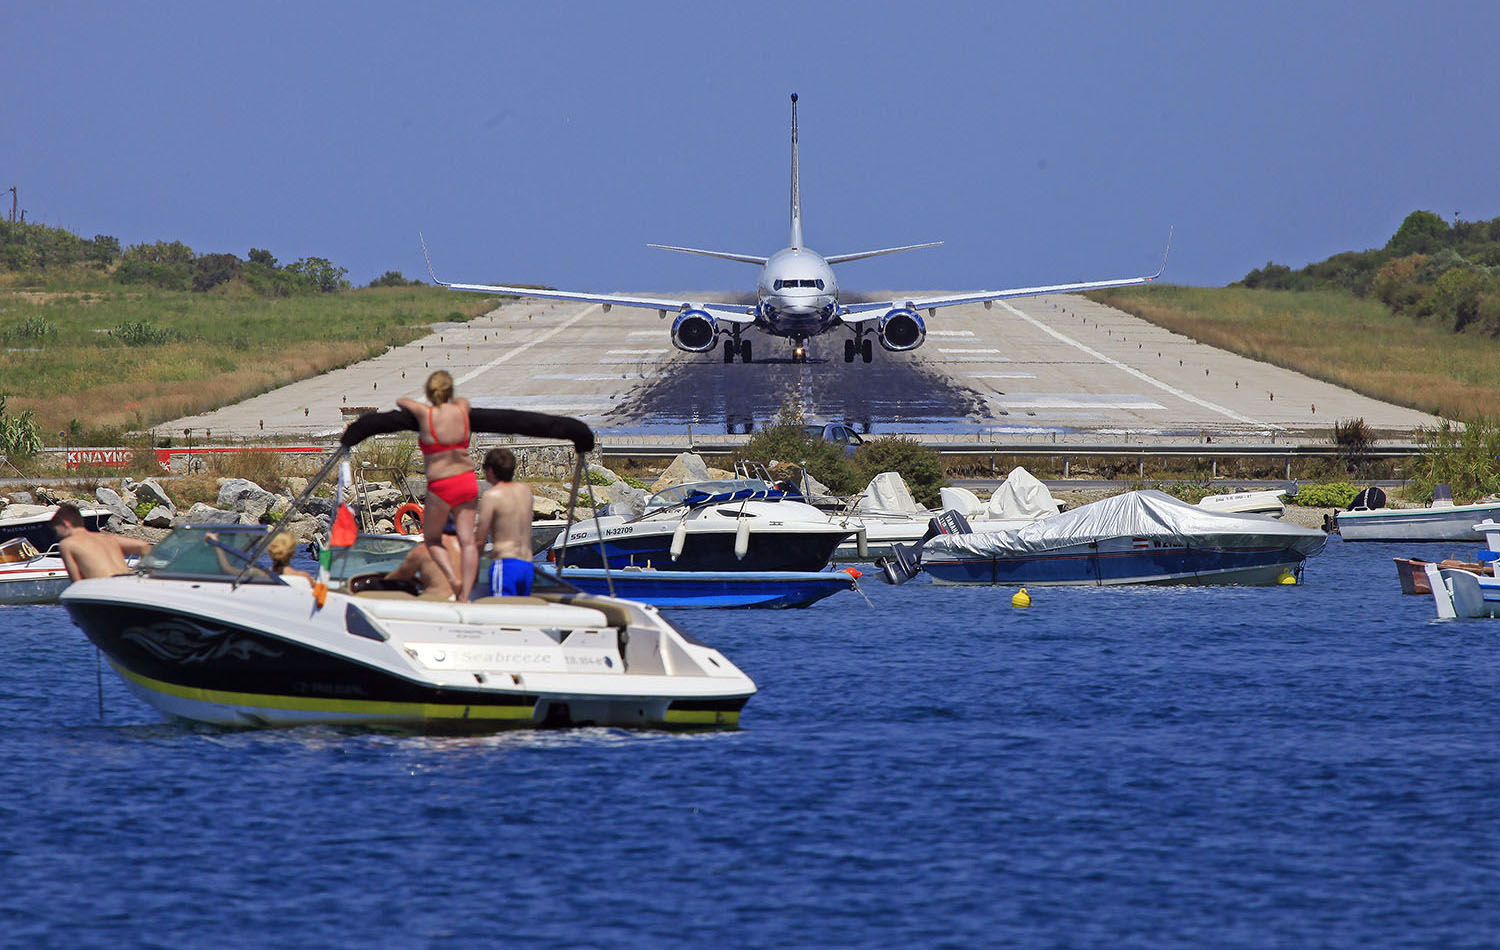 Skiathos Airport nominated for Europe's most Scenic Airports Award 2020